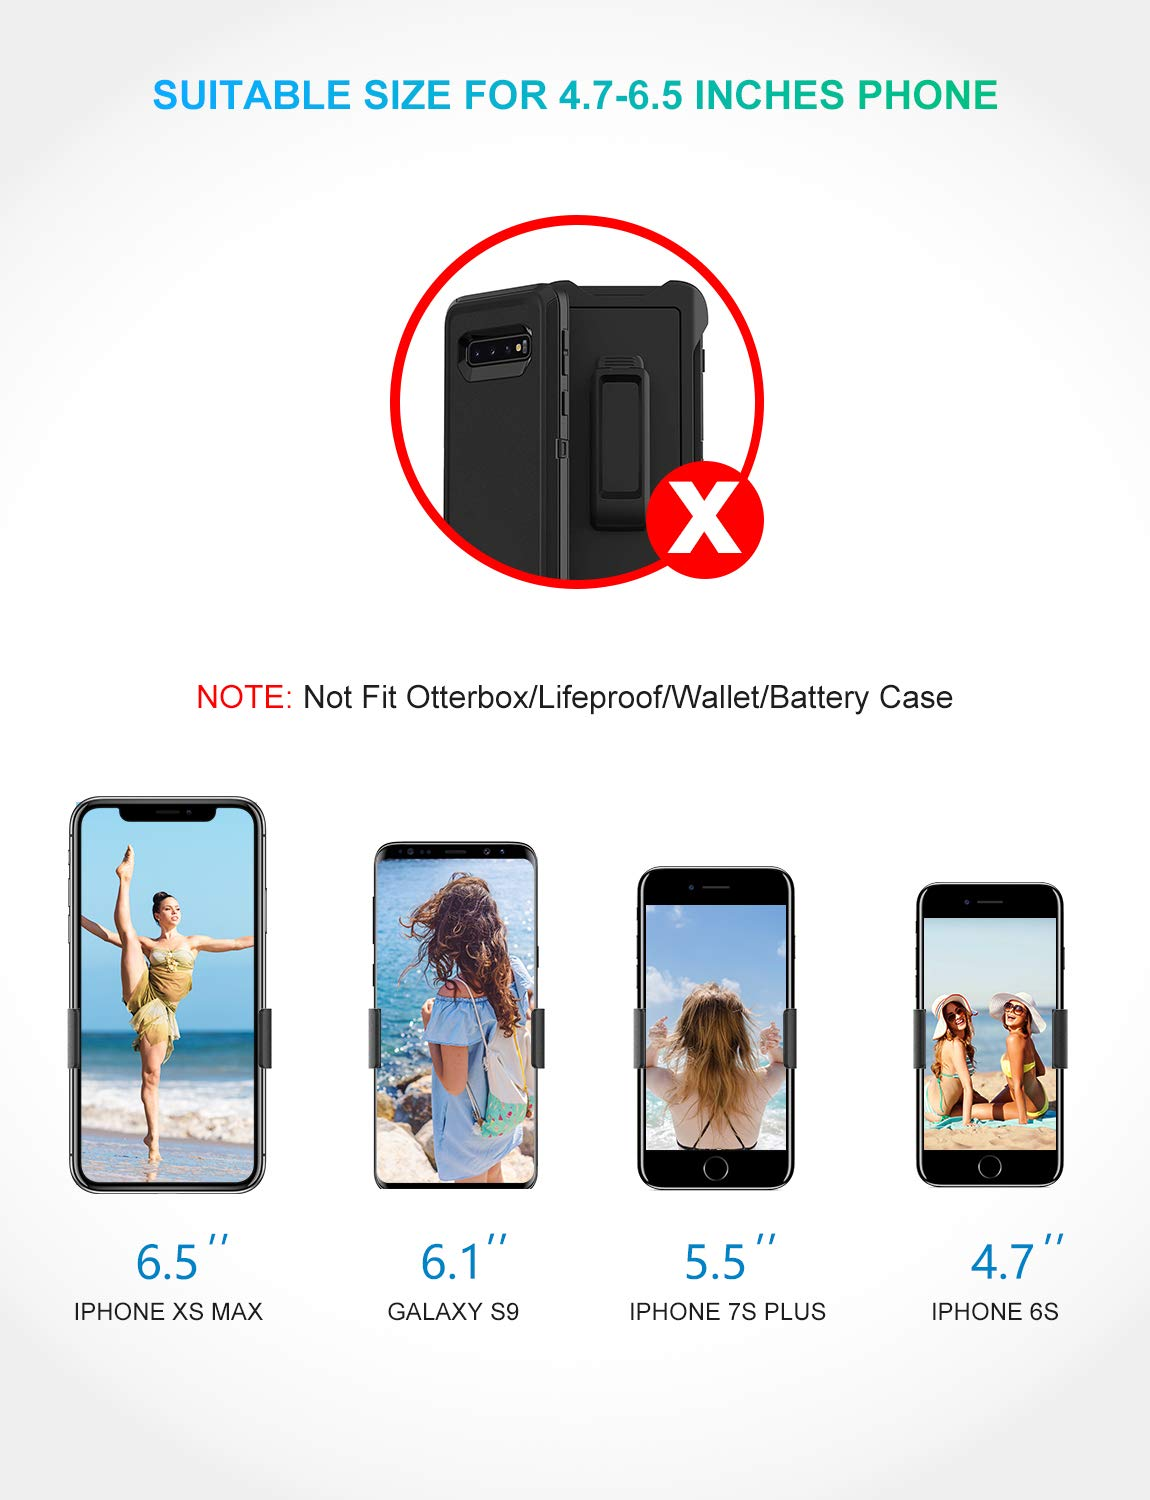 RYYMX Cell Phone Holder for Car Google Other Smartphone Air Vent Car Phone Holder with Double Clips Samsung Galaxy S8 Edge S9+ S10 Compatible iPhone Xs Max XR X 8 8P 7 7Plus 6 6s Car Phone Mount